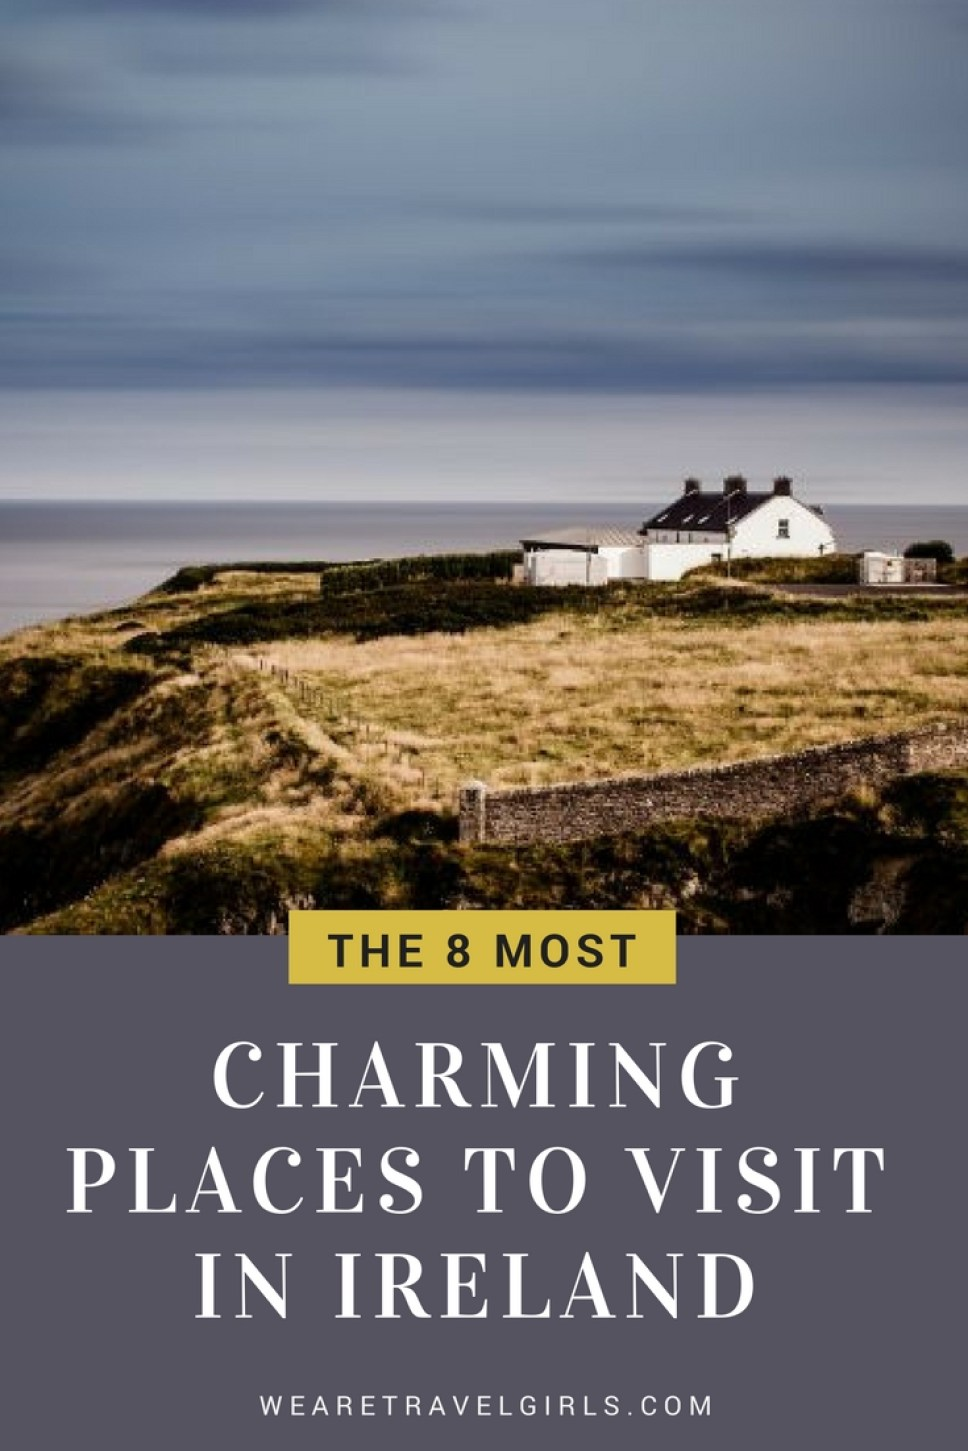 8 charming places to visit in Ireland